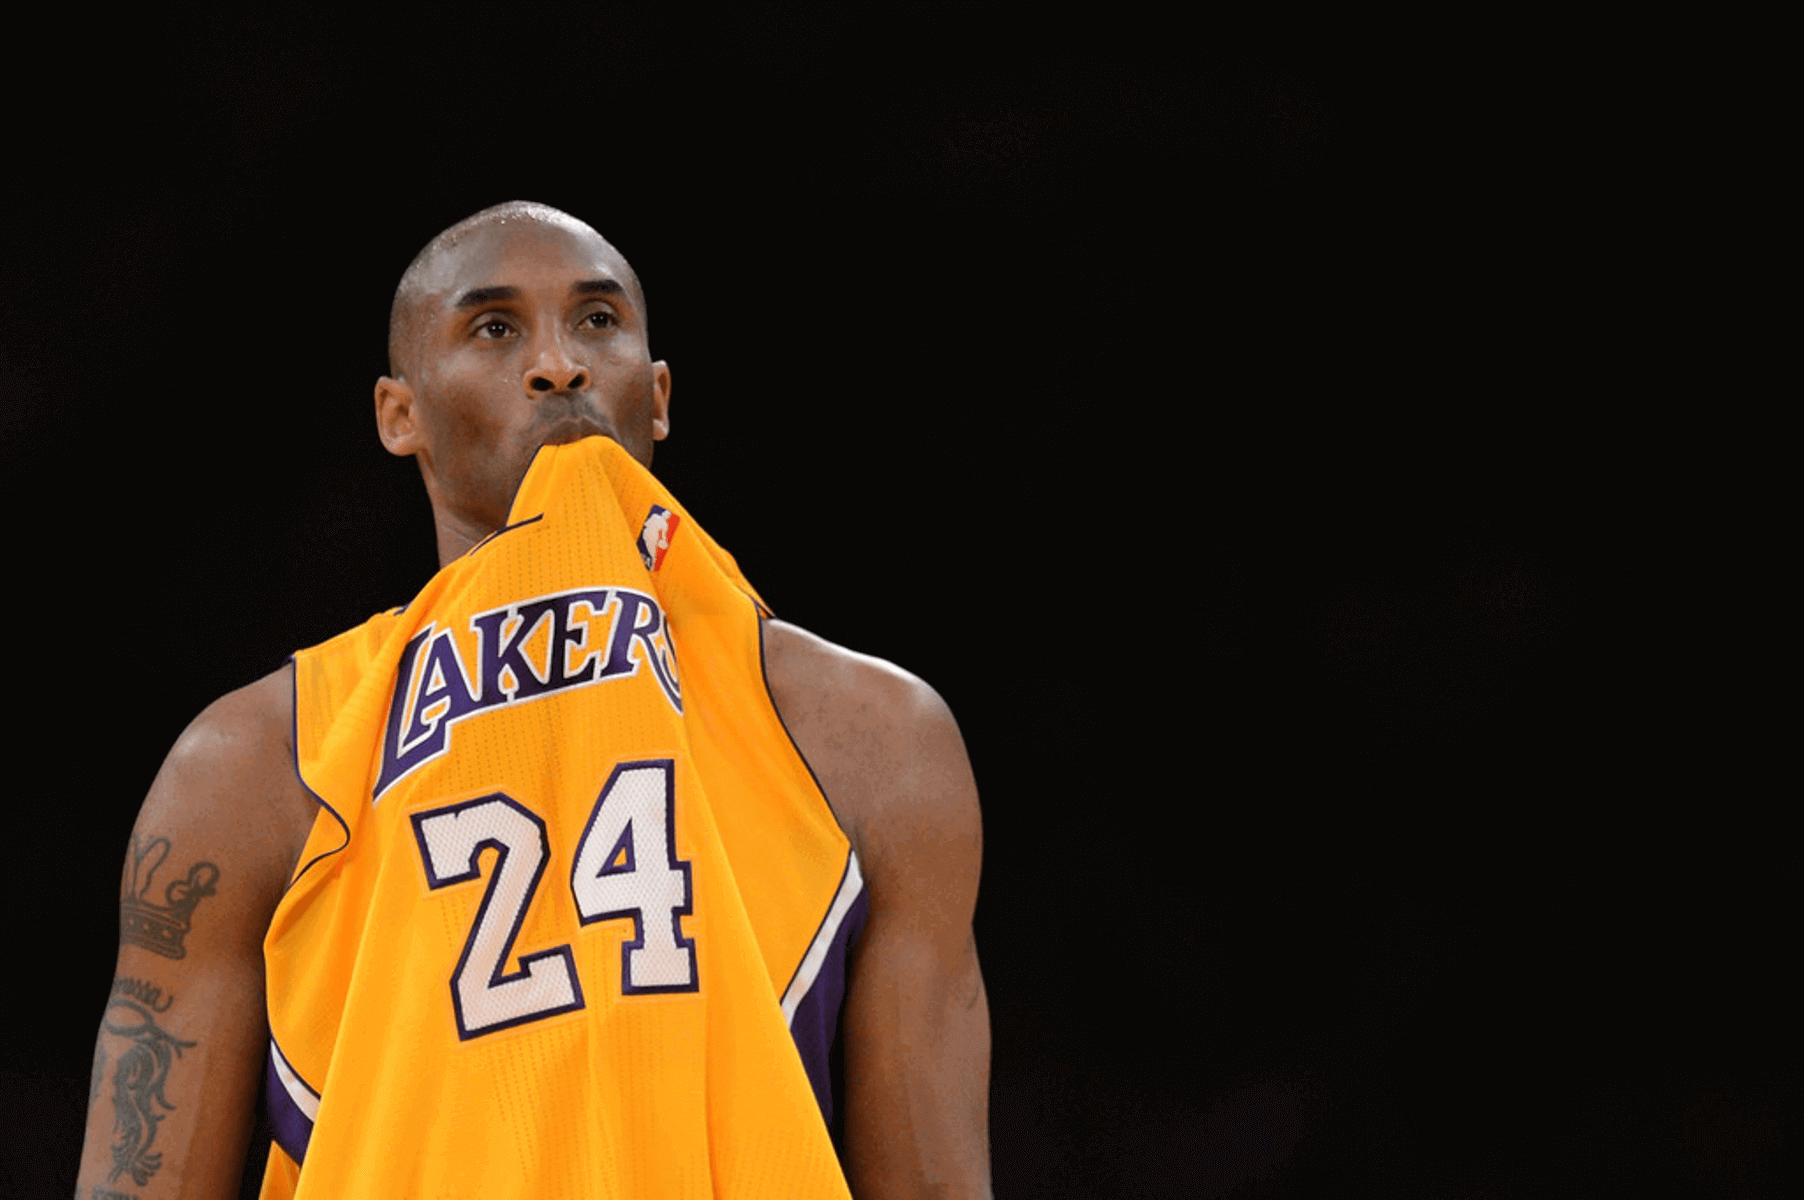 Kobe Bryant|Demise Of A Legendary NBA Star